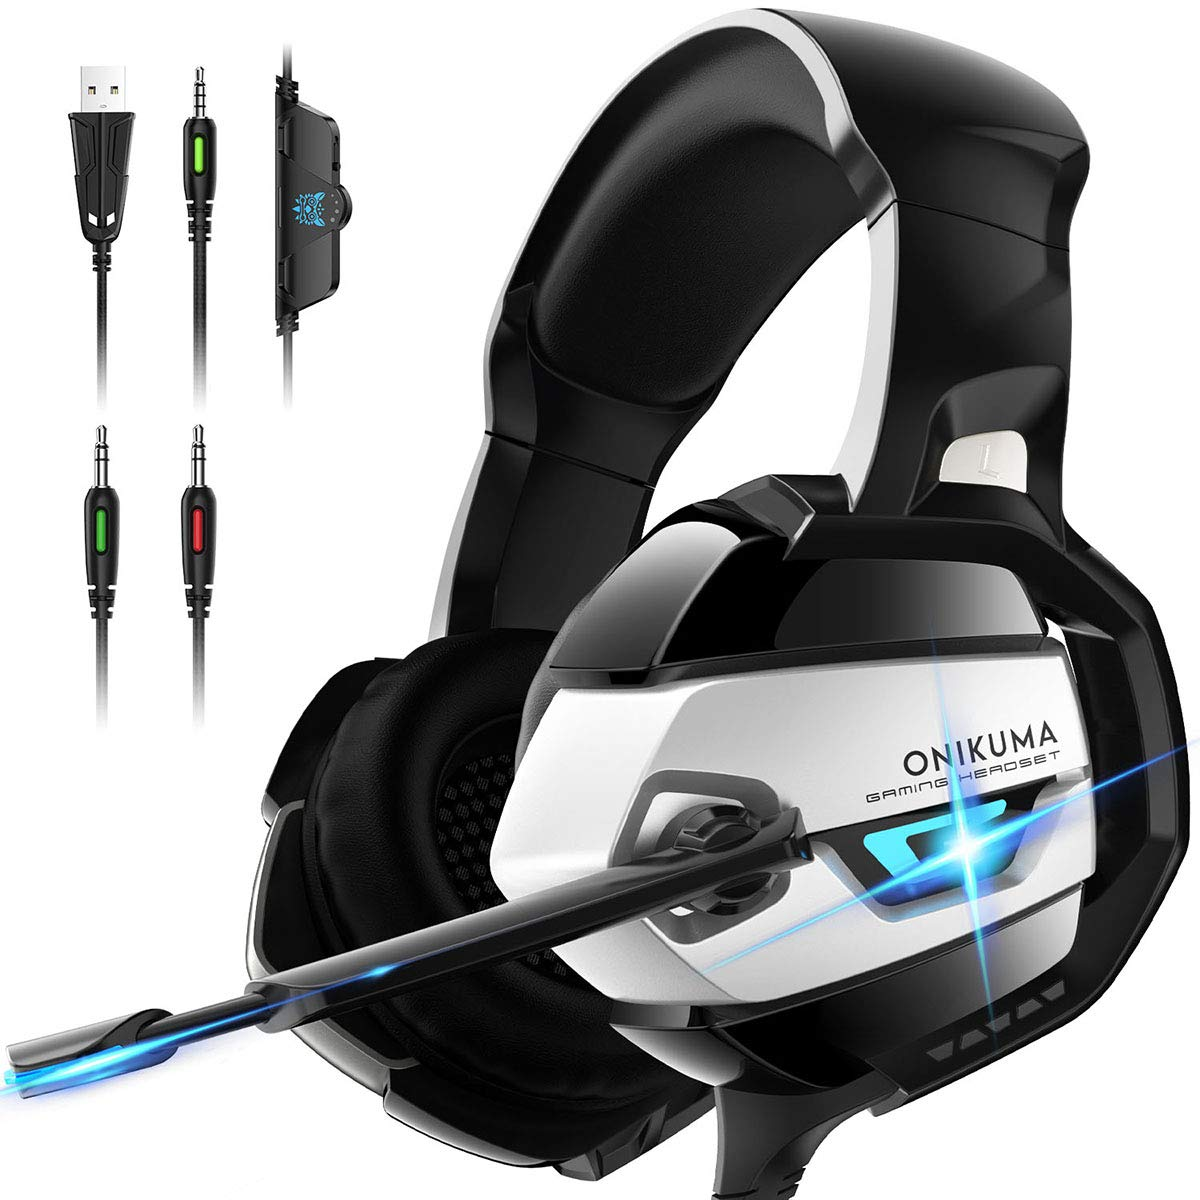 ONIKUMA Gaming Headset - Xbox 360 Headset [2019 K5 Pro] with Noise Canceling Mic &7.1 Surround Bass, Over Ear Gaming Headphones for Xbox 360, Xbox ...